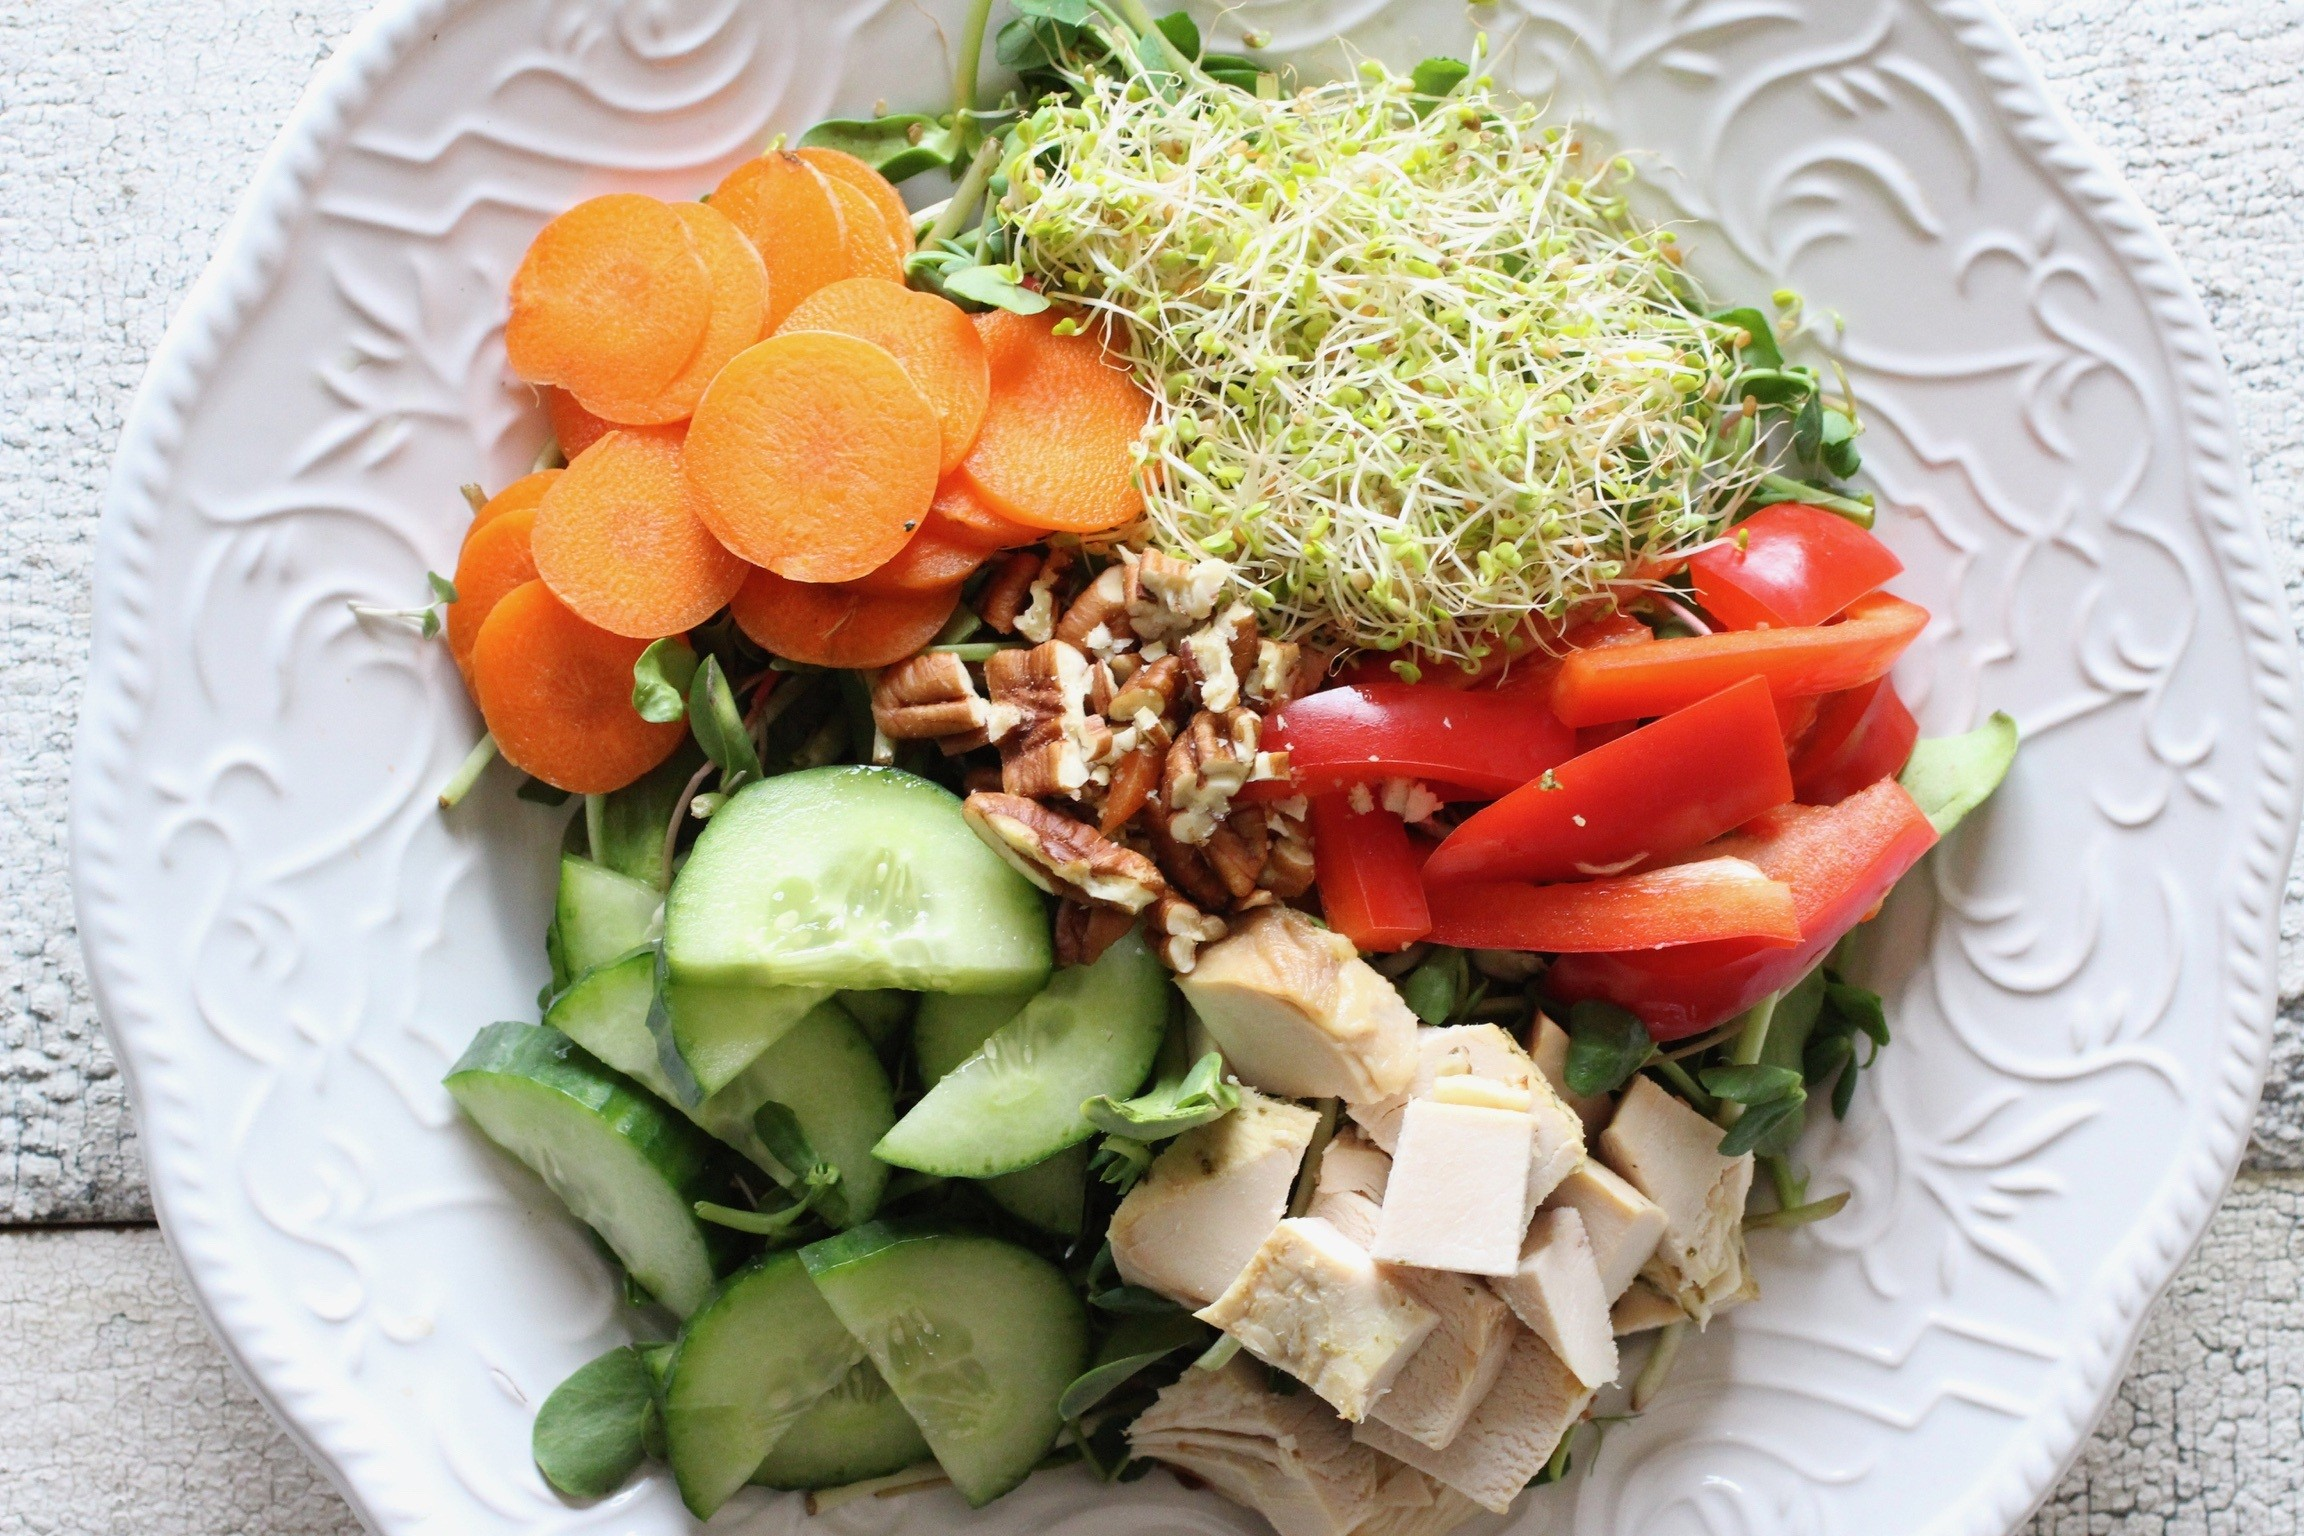 Cobb salad recipe with balsamic vinaigrette - 2